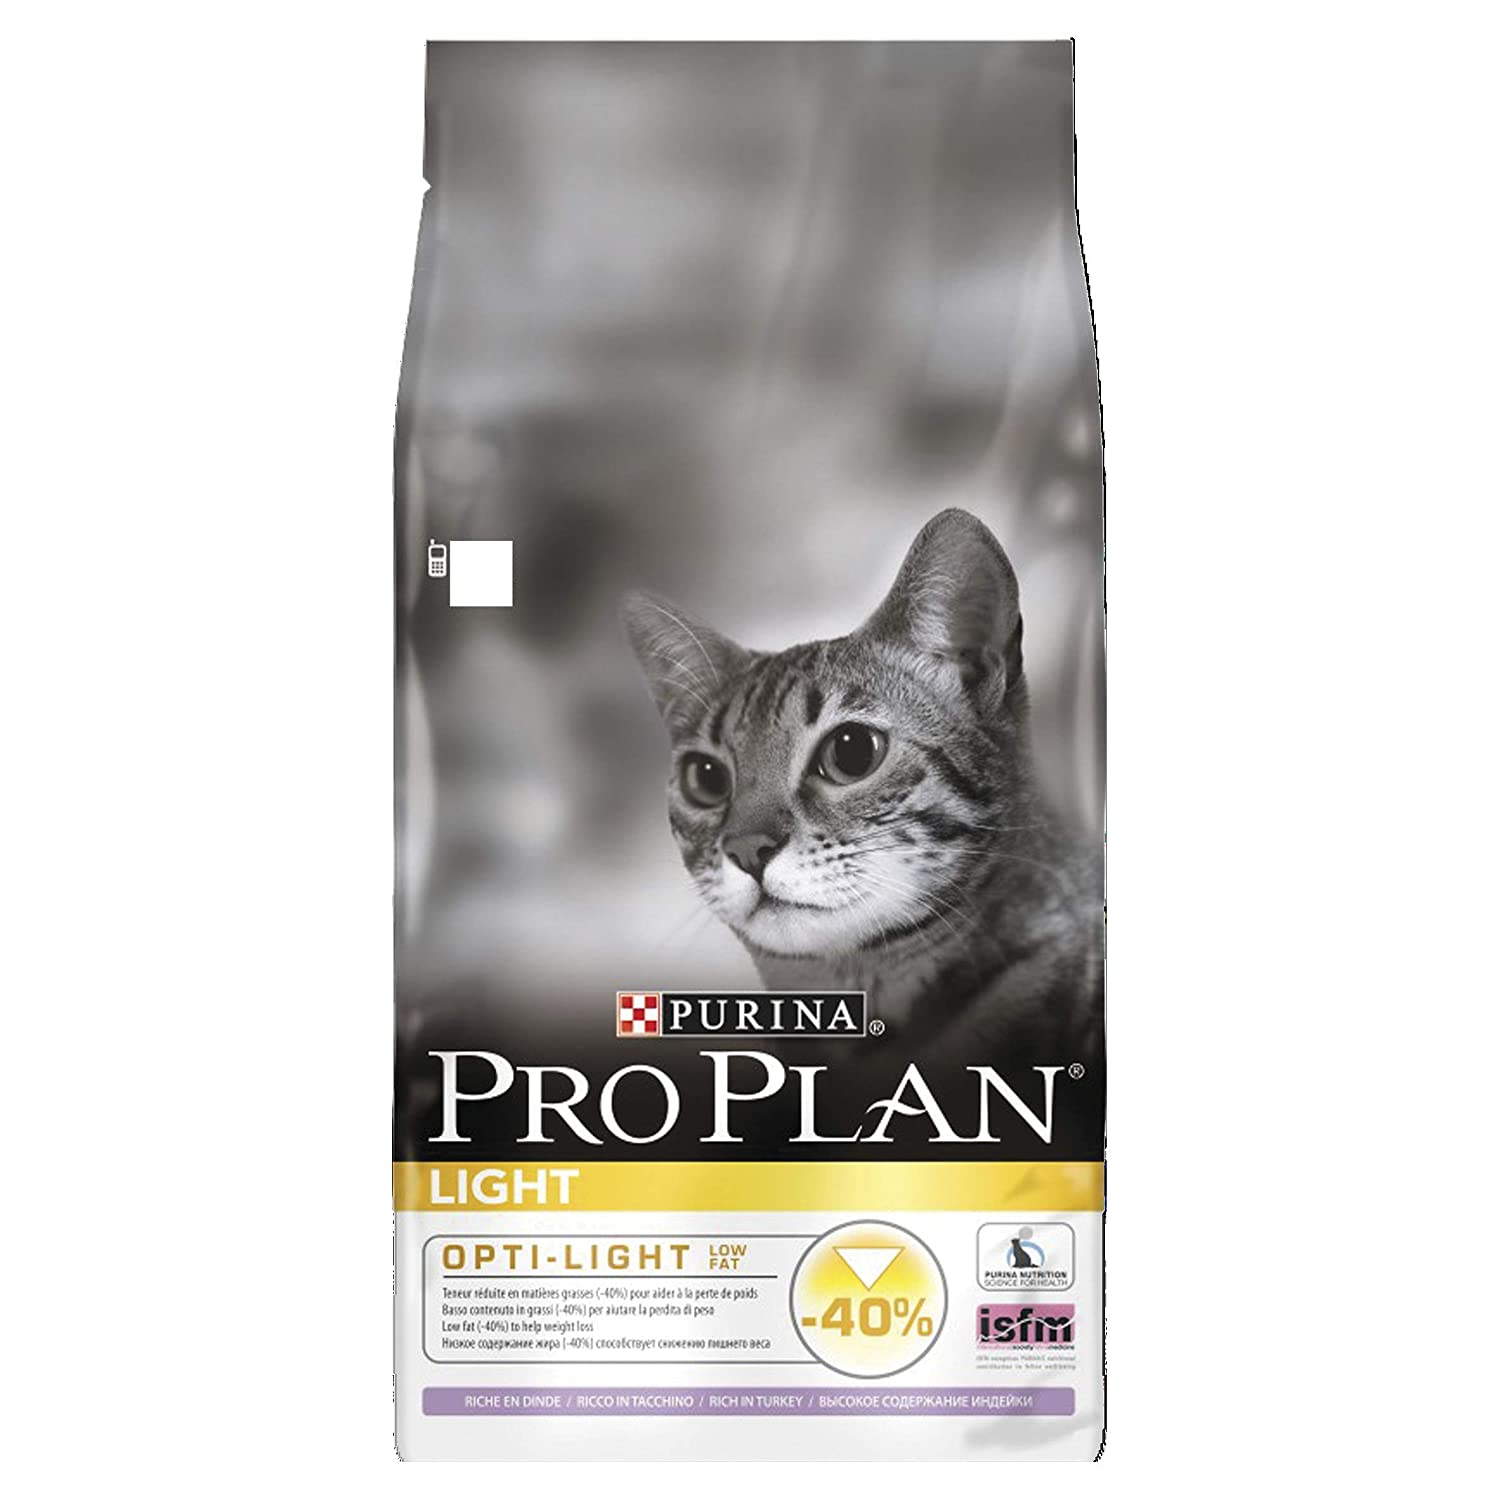 PRO PLAN Light - Riche en Dinde - 10 KG - Croquettes pour chat adulte Nestle ProPlan 1425